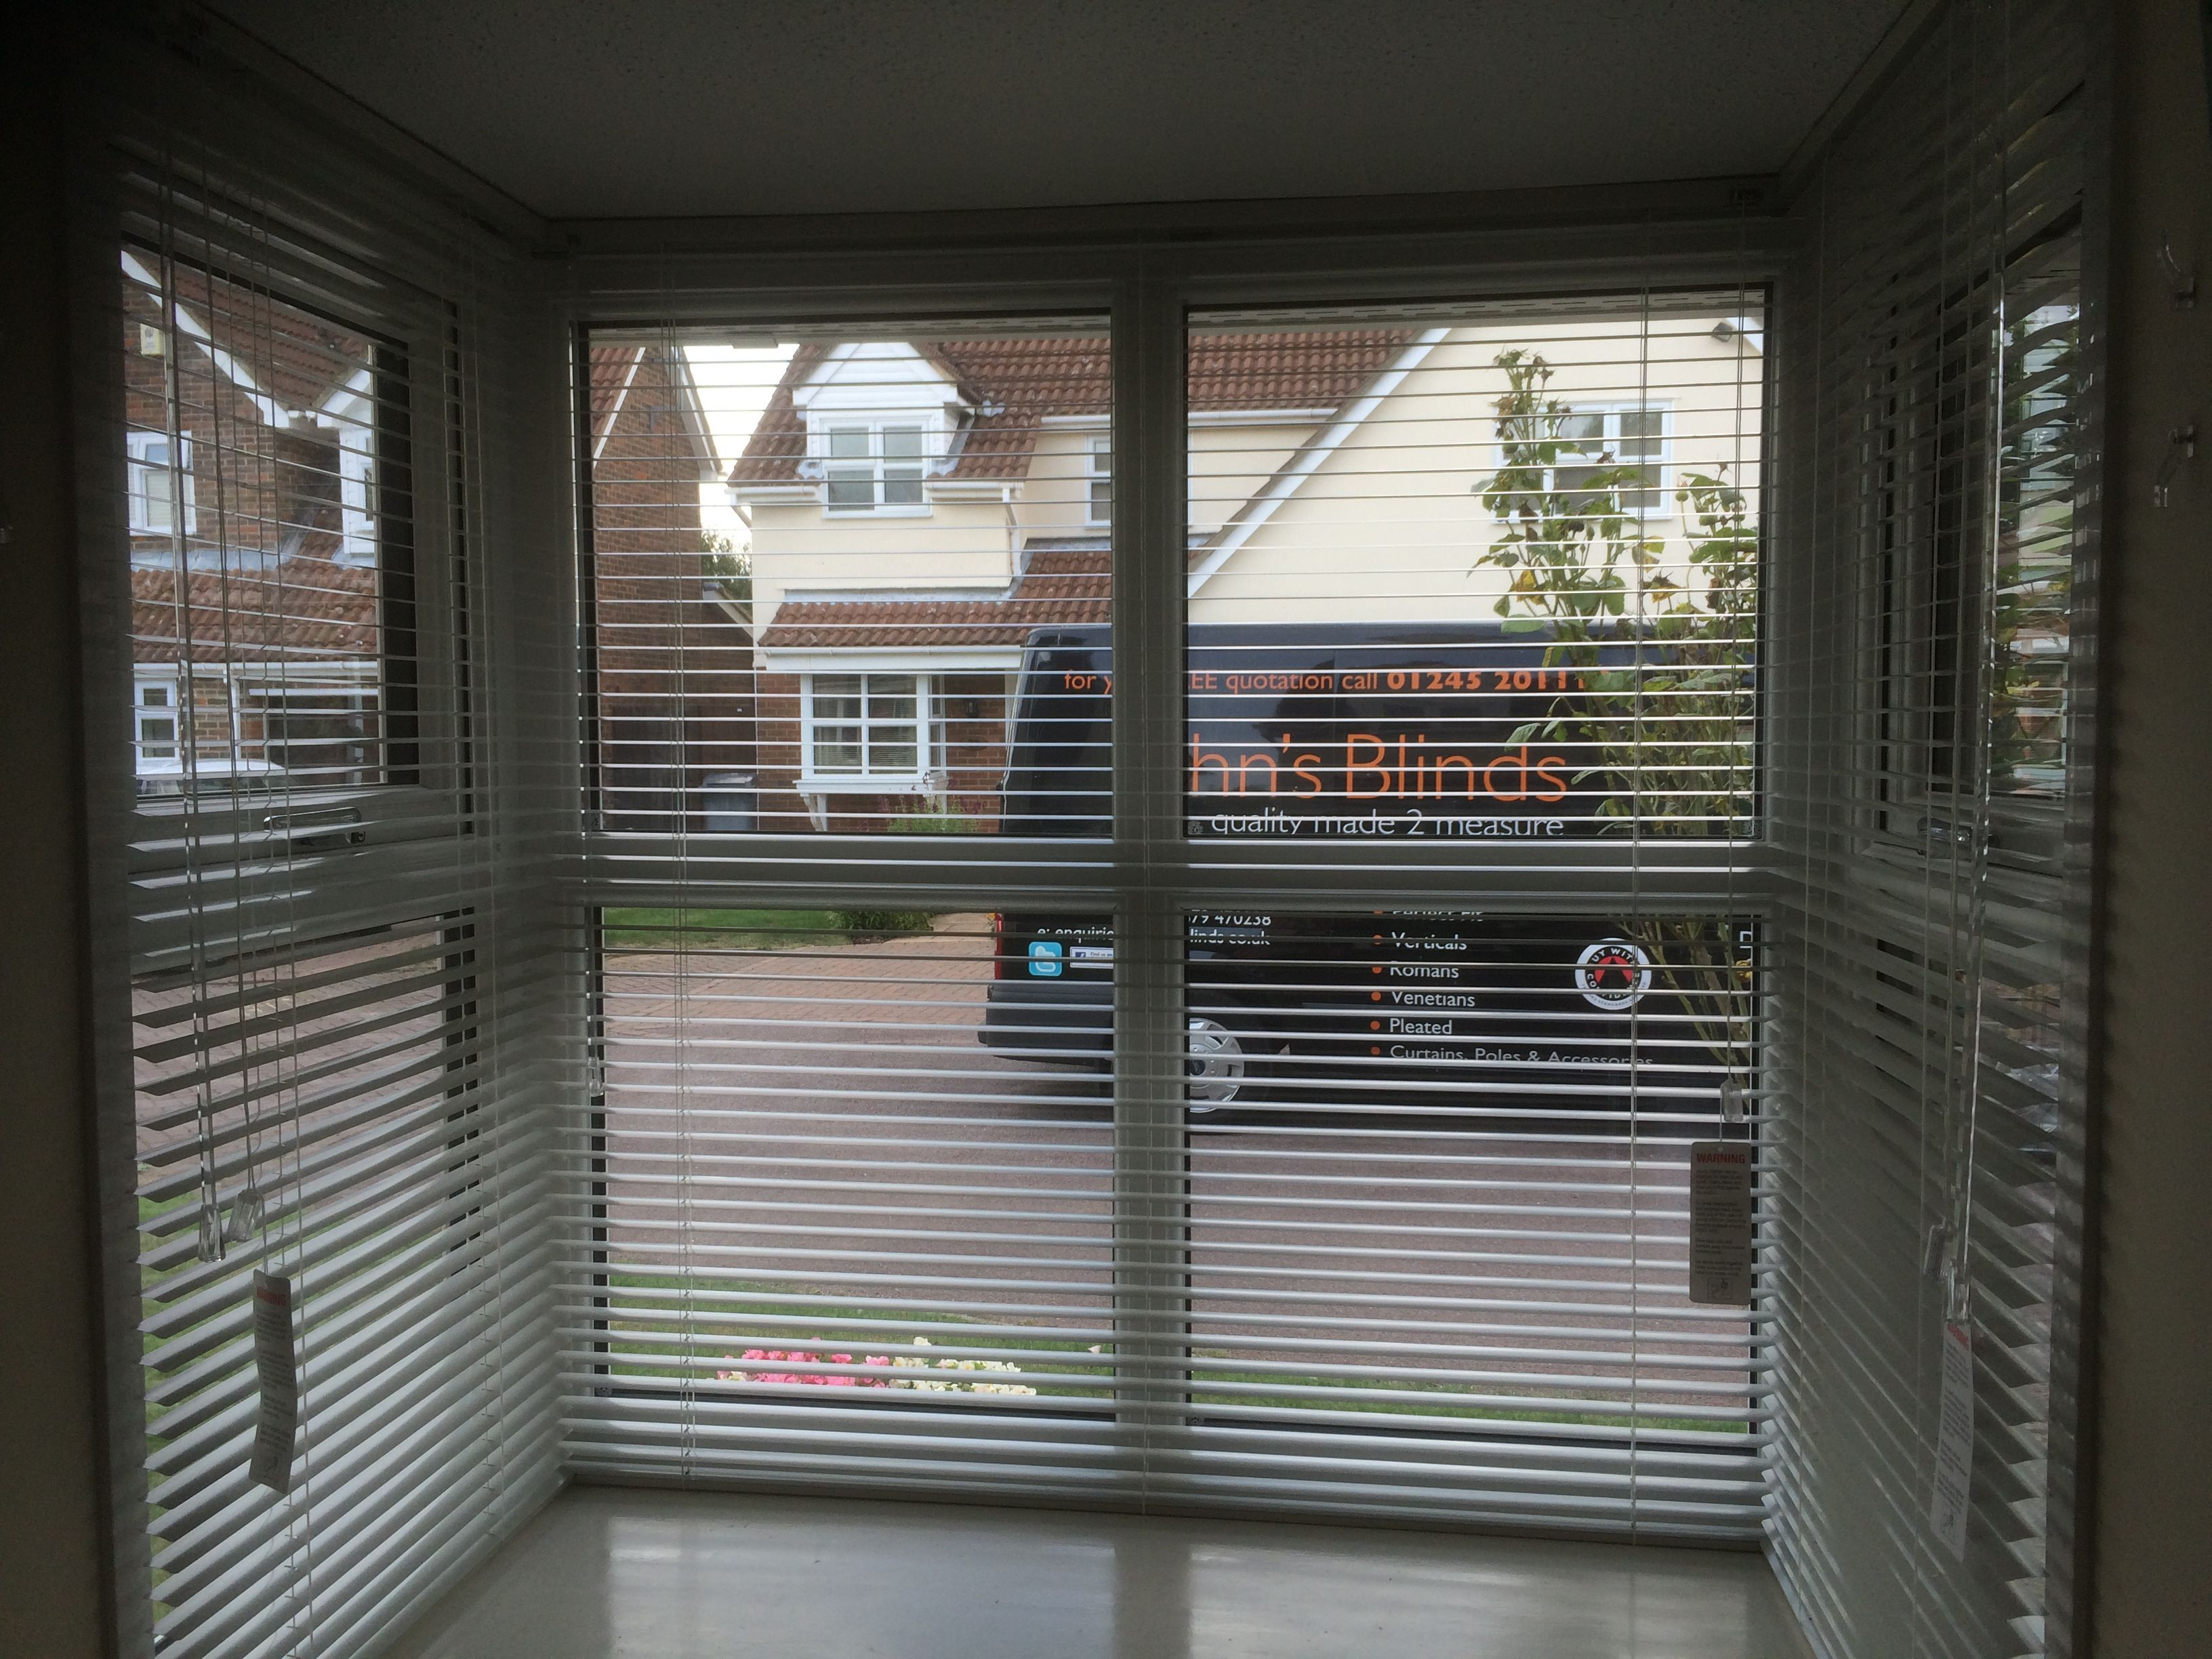 Aluminium blinds in a square bay window blinds venetians style